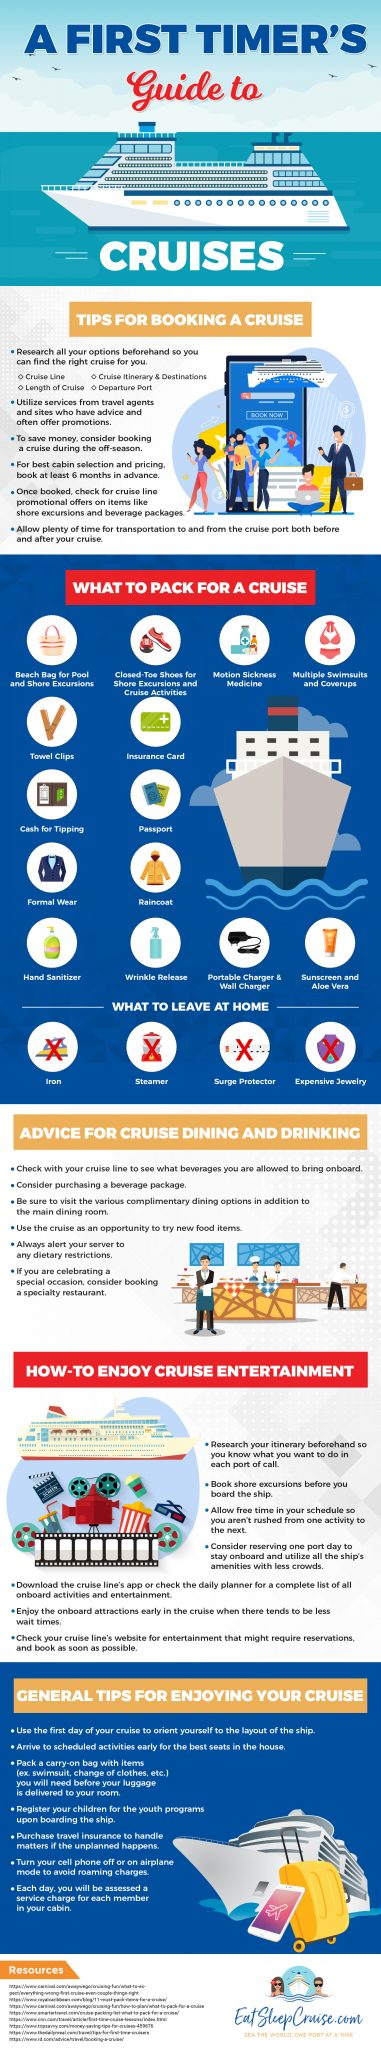 A First Timer's Guide to Cruises